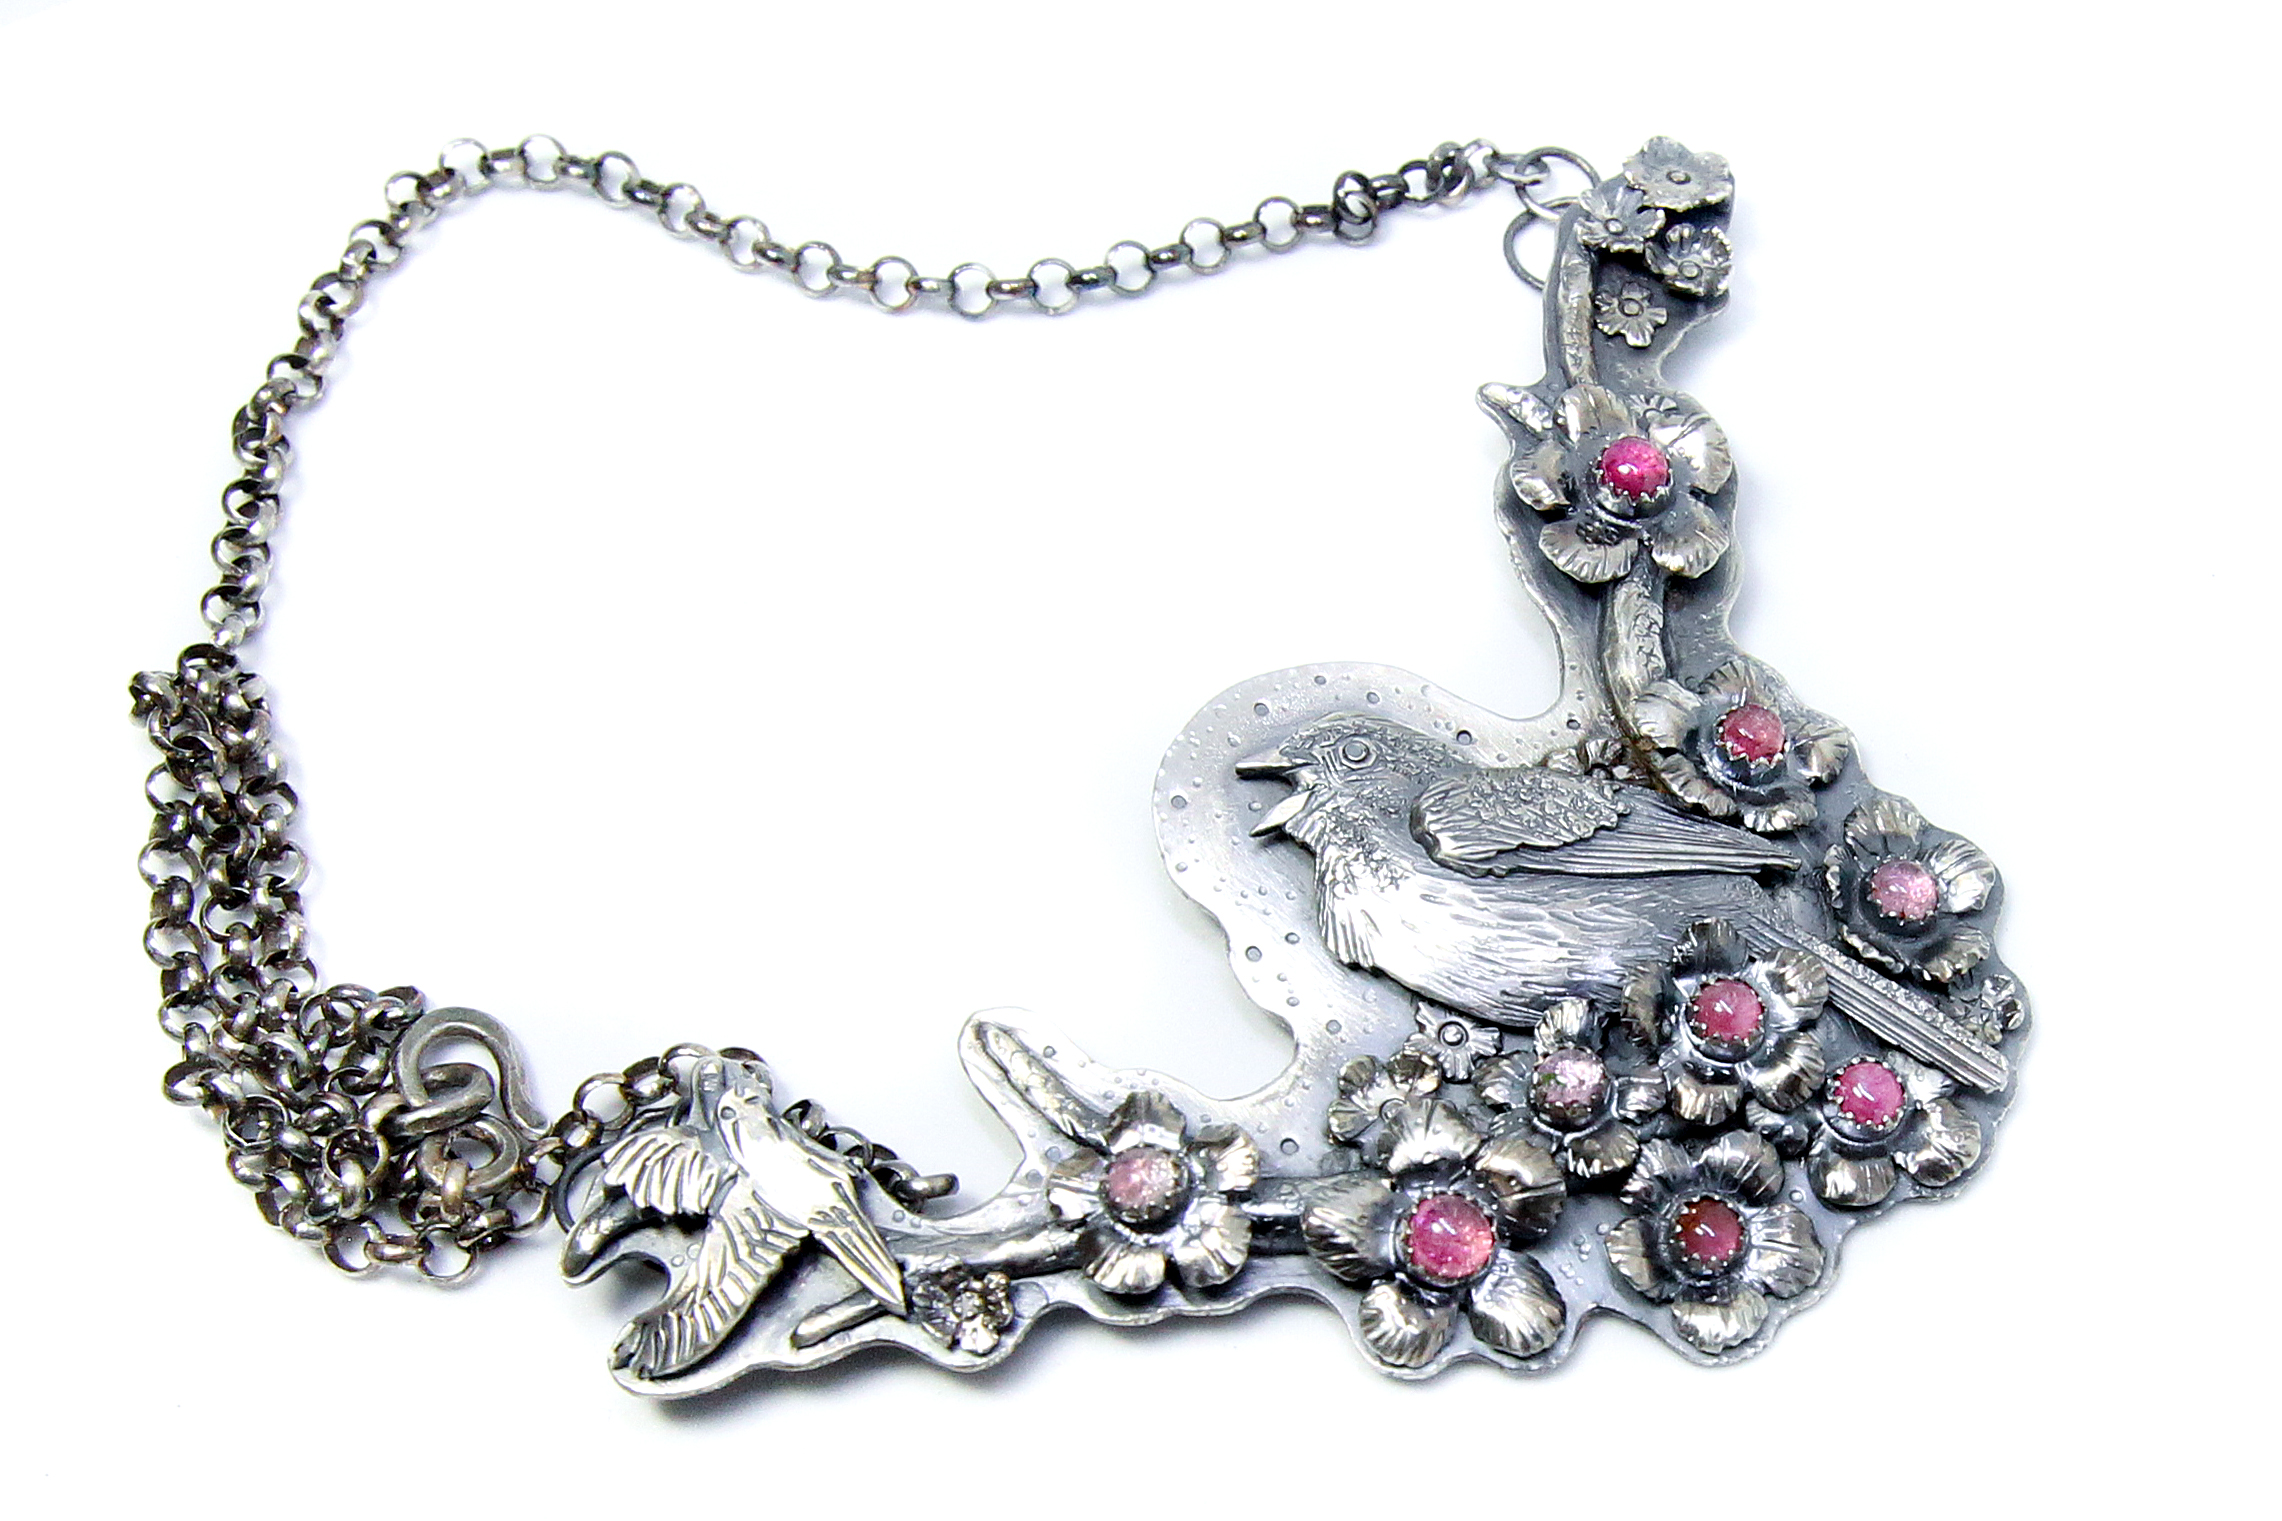 """MICHAELA SAGATOVA signed THORNBIRD JEWELRY - """"Seasons in the Sun"""", fine and sterling silver with natural tourmaline.119mm X 65mm on 19"""" sterling rolo chain$2,200"""